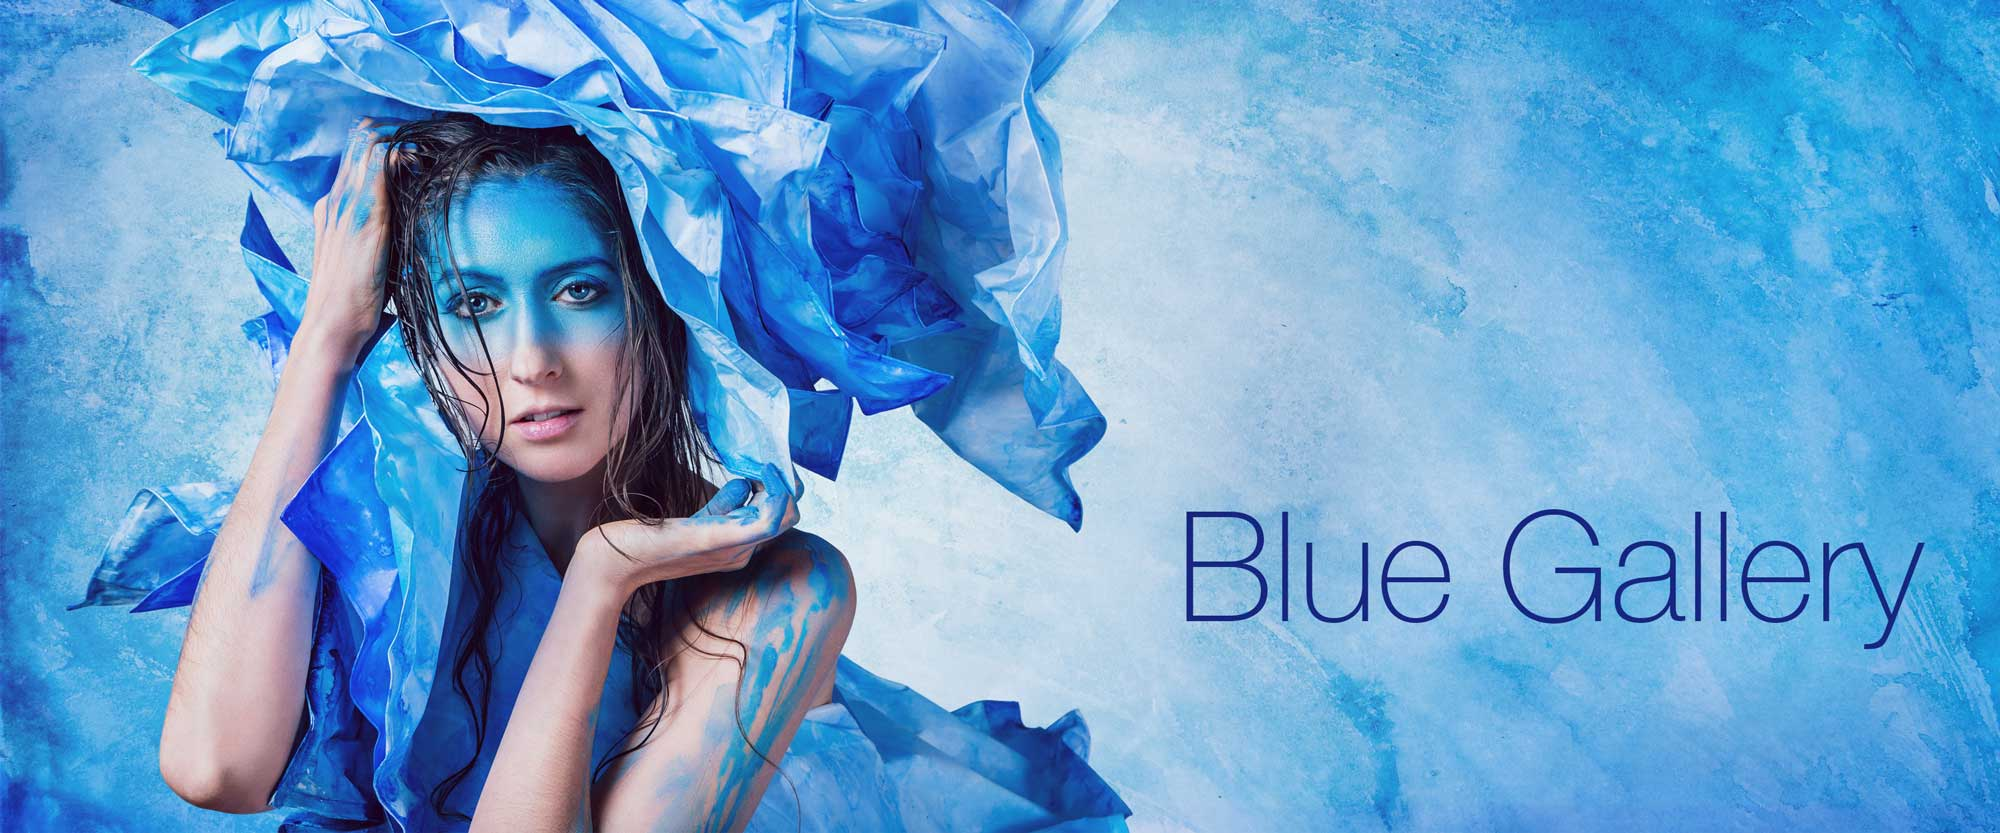 Laüra Hollick's Blue Gallery